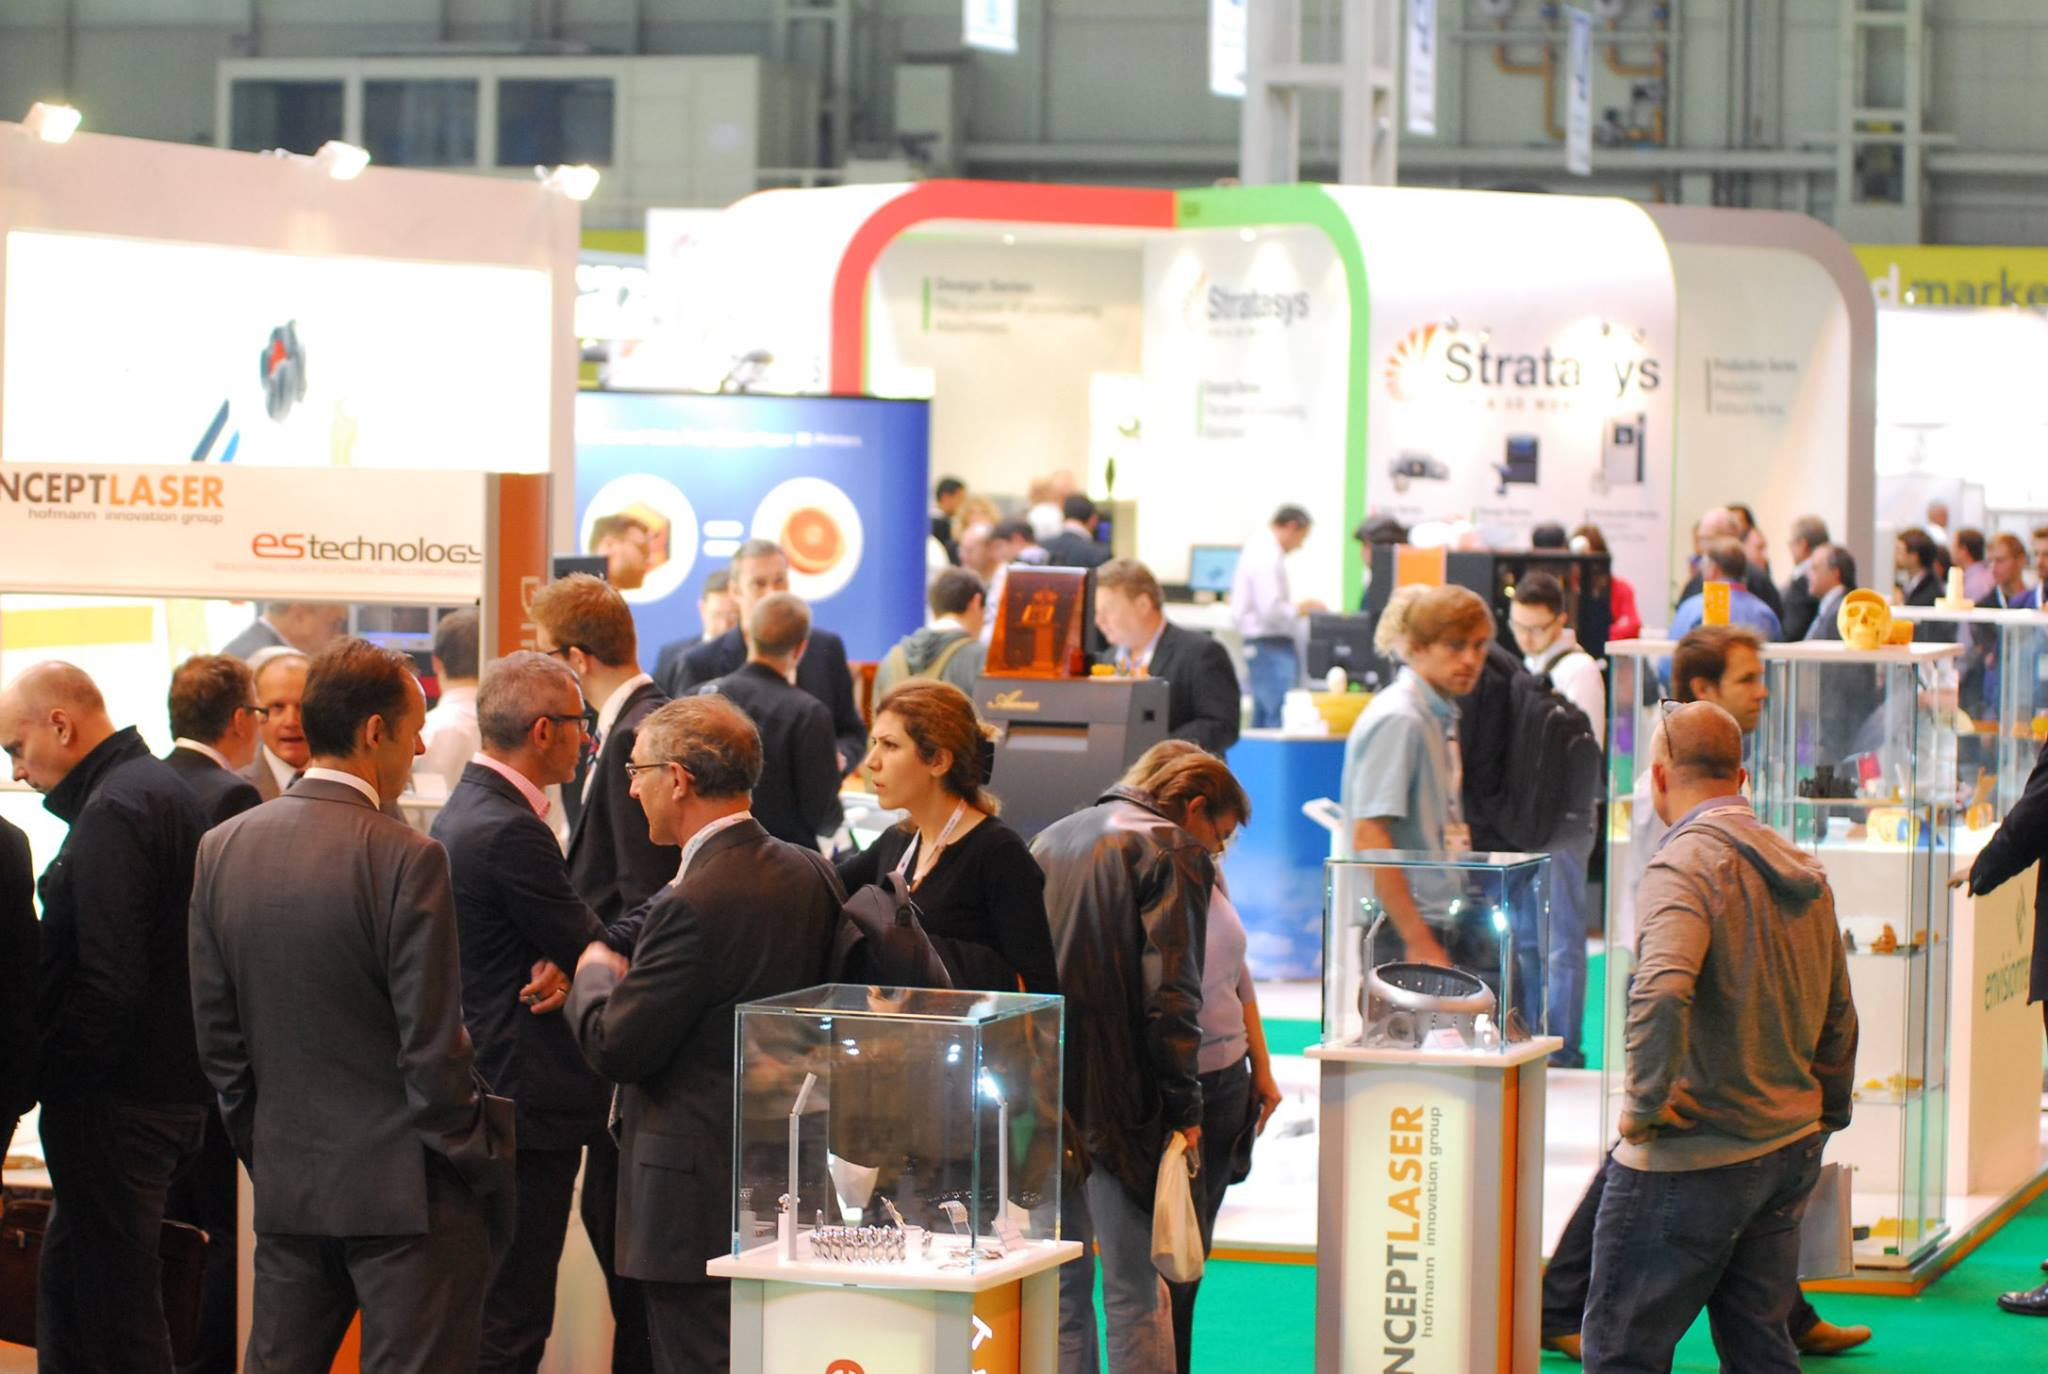 D Printing Exhibition Nec : A preview of d printing at the tct show d printing industry